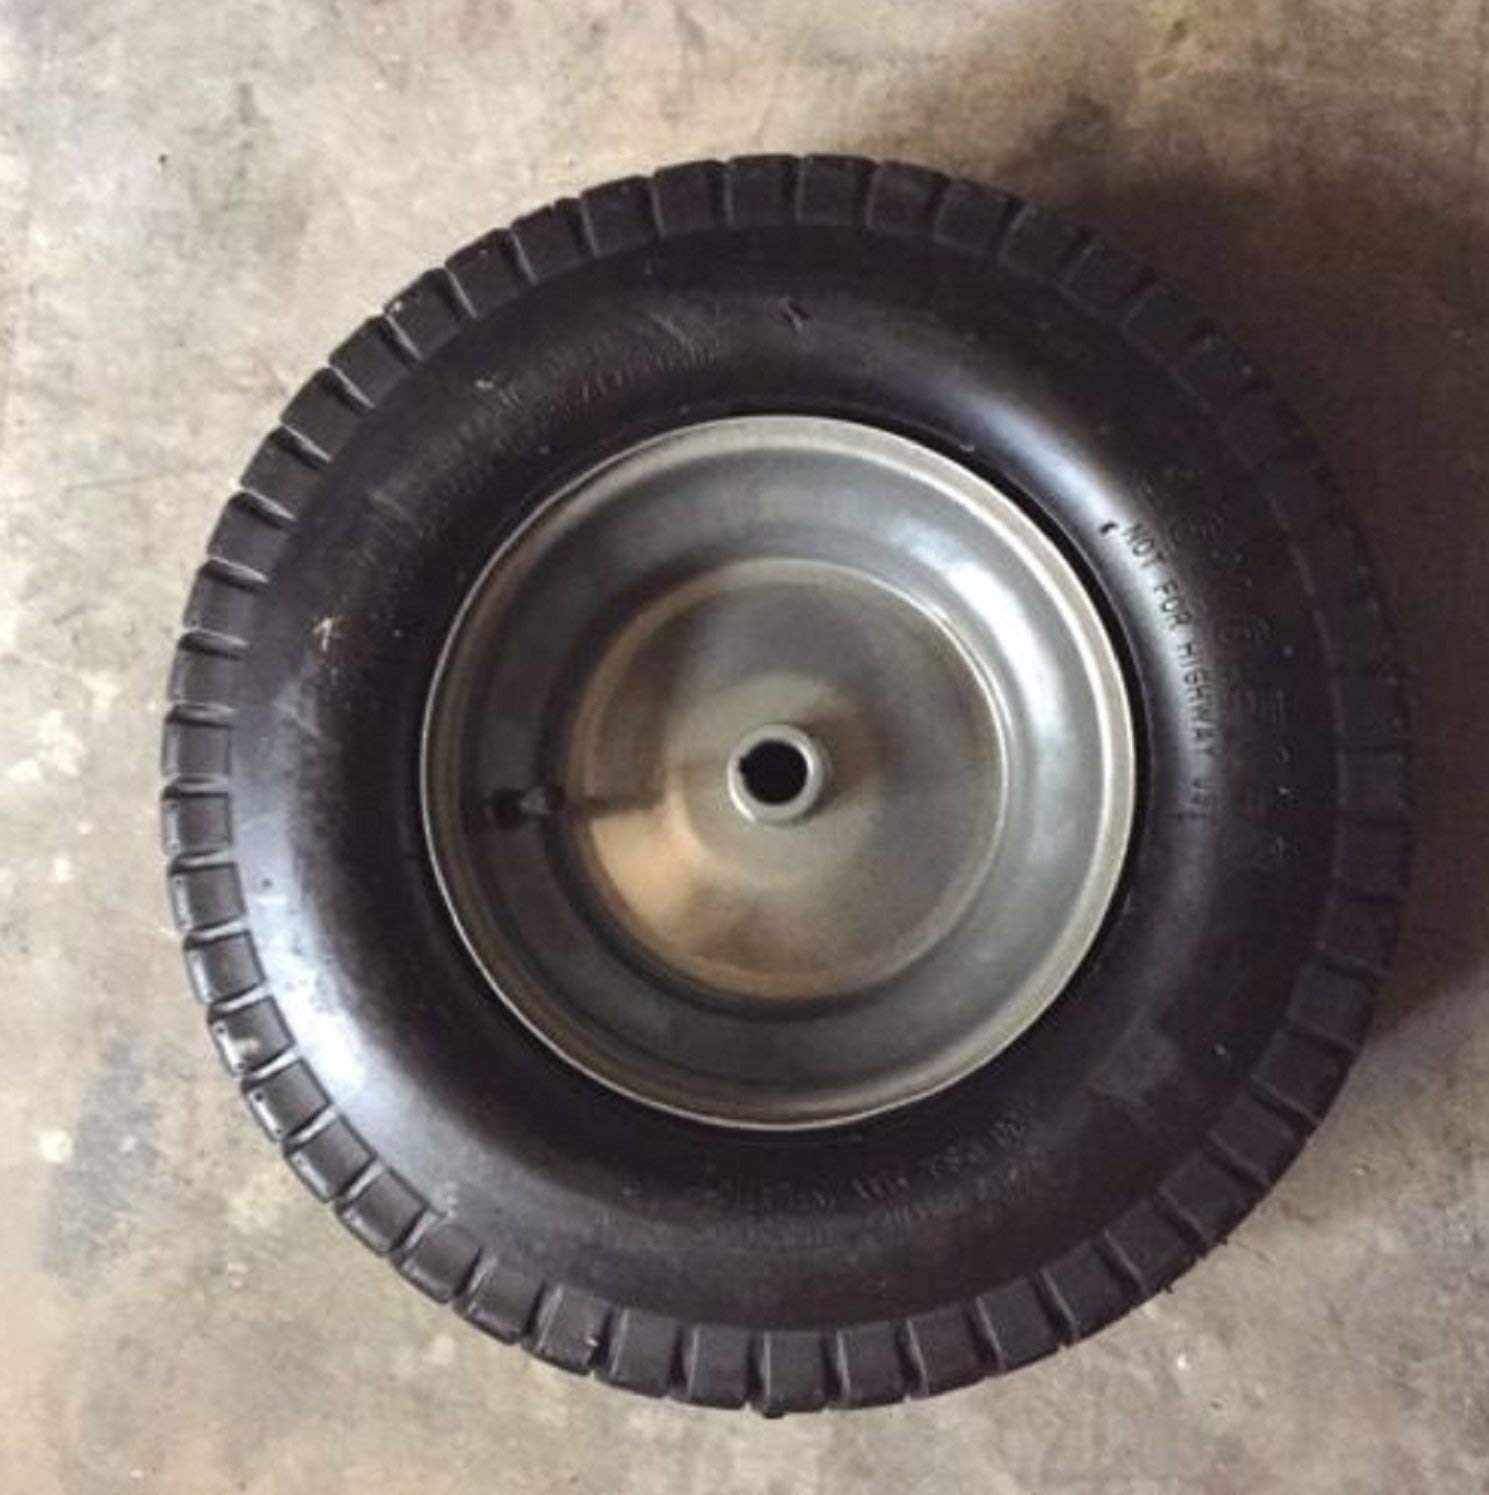 "USA Premium Store 16x6.50-8 2 Ply Tube Type 3/4"" ID 3"" Through Hub Keyed Mower Wheel Tire"